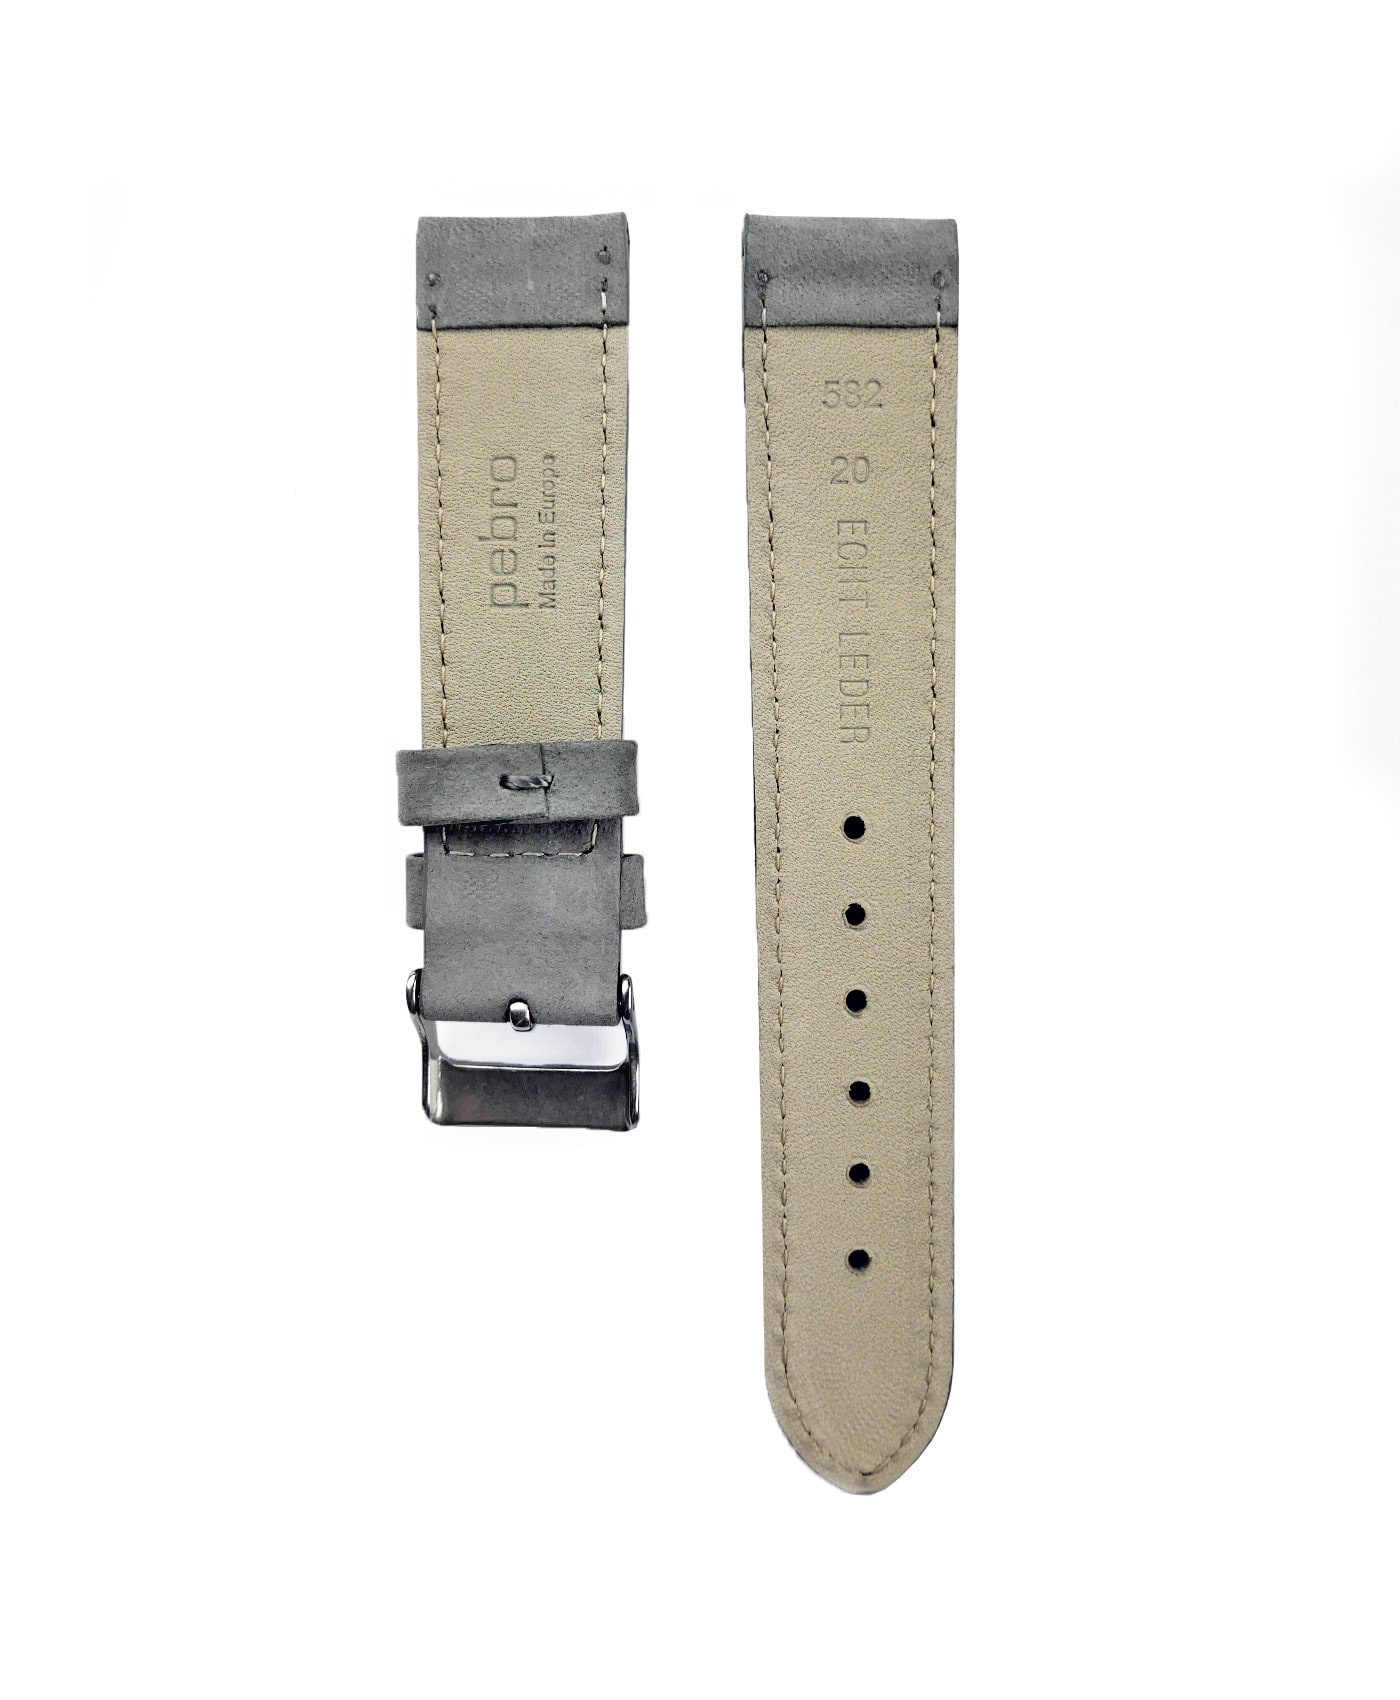 Pebro Premium Calfskin Watch Strap Grey No 582 back